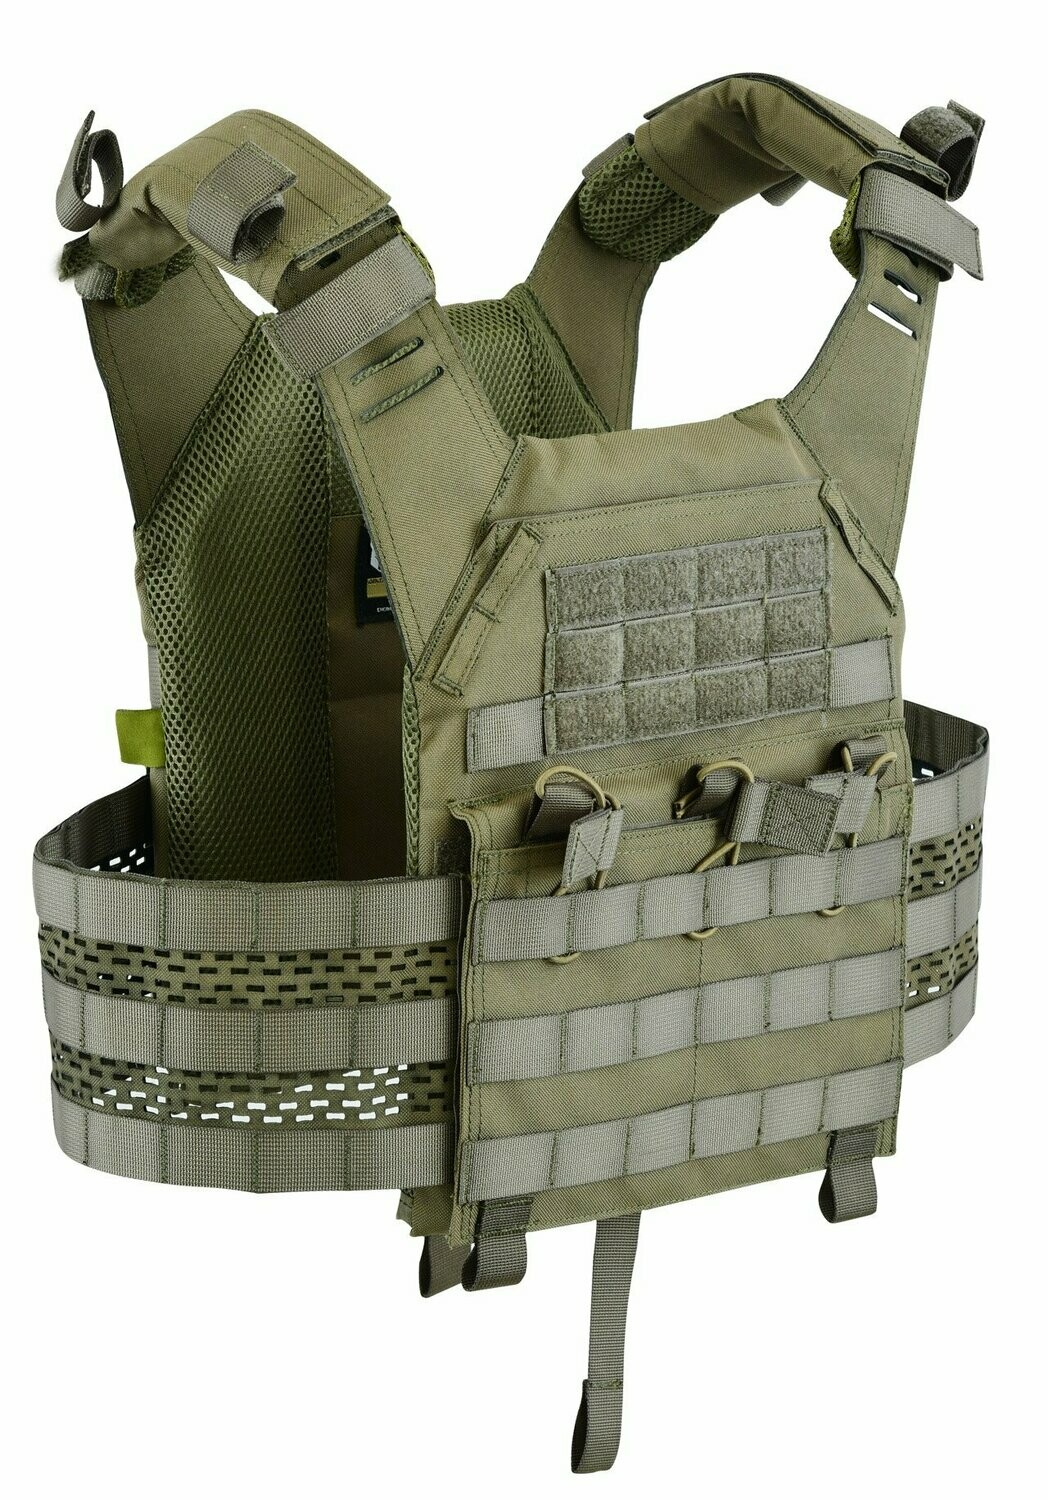 SHS-124 Spartan Plate Carrier by SHS